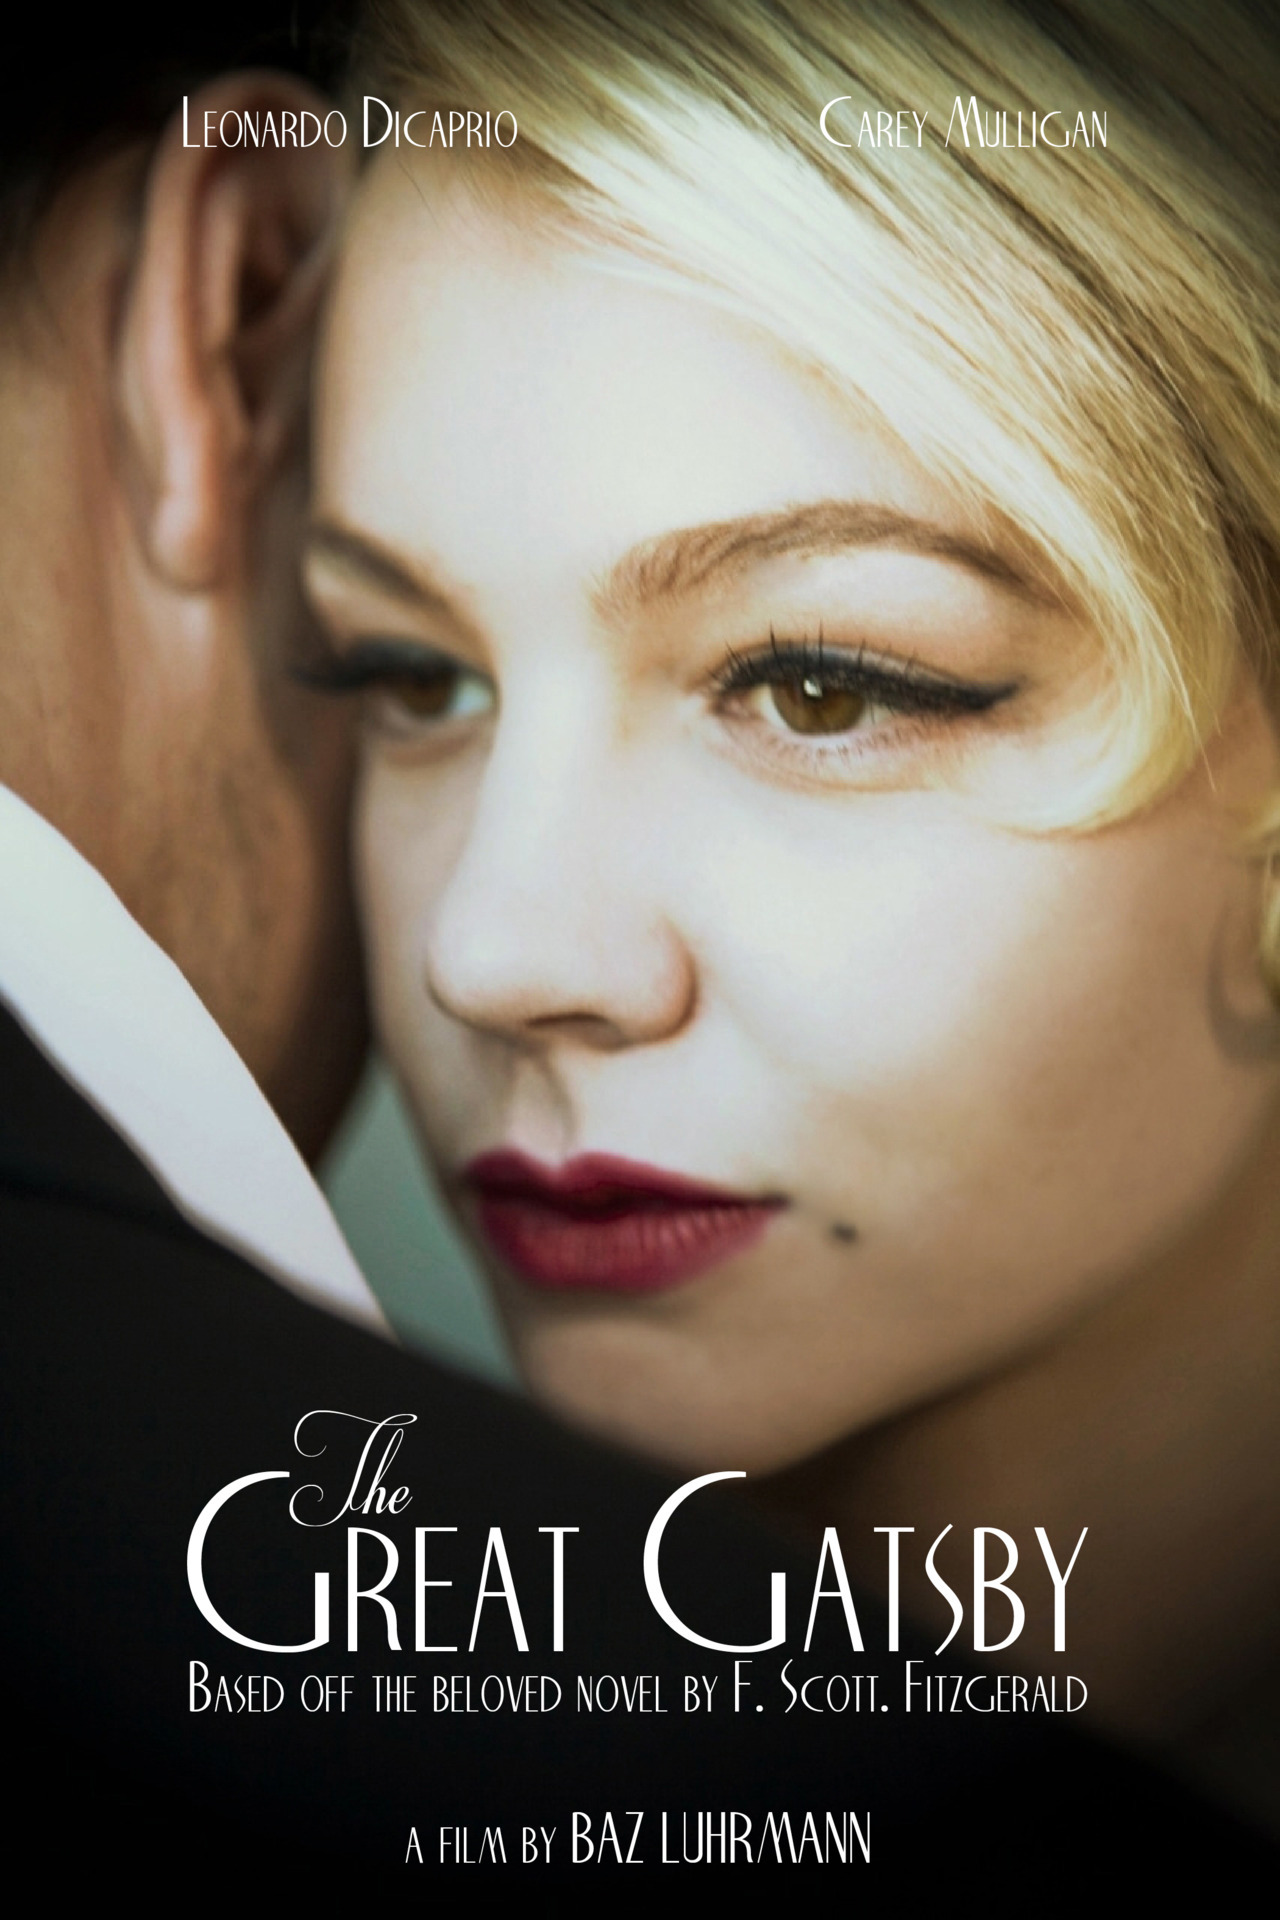 tumblr m0j9nwiRRb1qzdglao1 1280 The Great Gatsby Trailer   Starring Leonardo DiCaprio, Directed by Baz Luhrmann